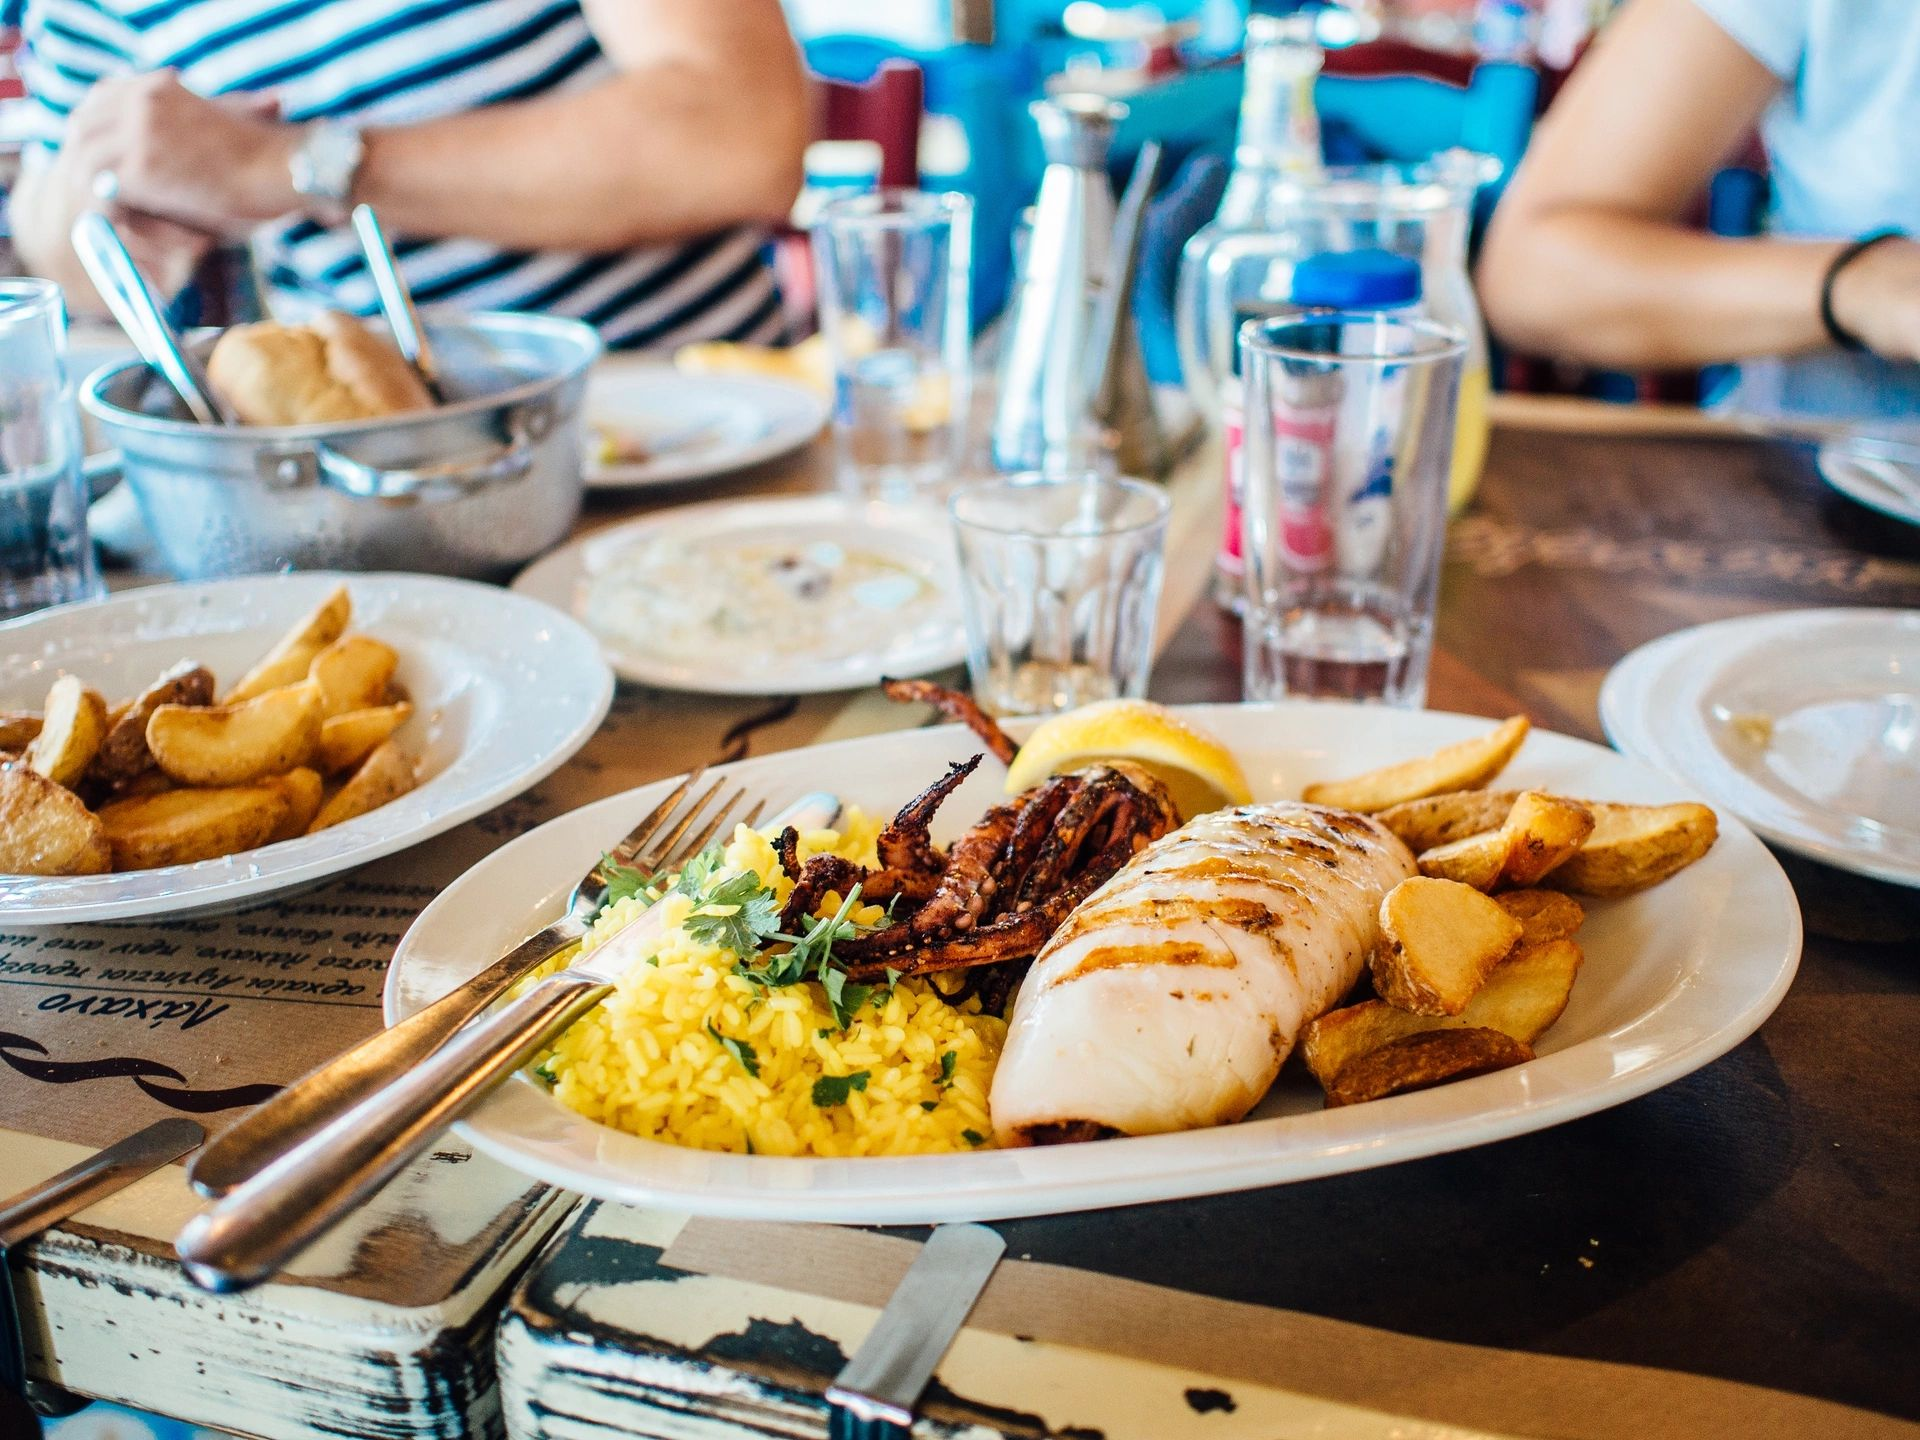 How to Act During a Business Meal recommendations